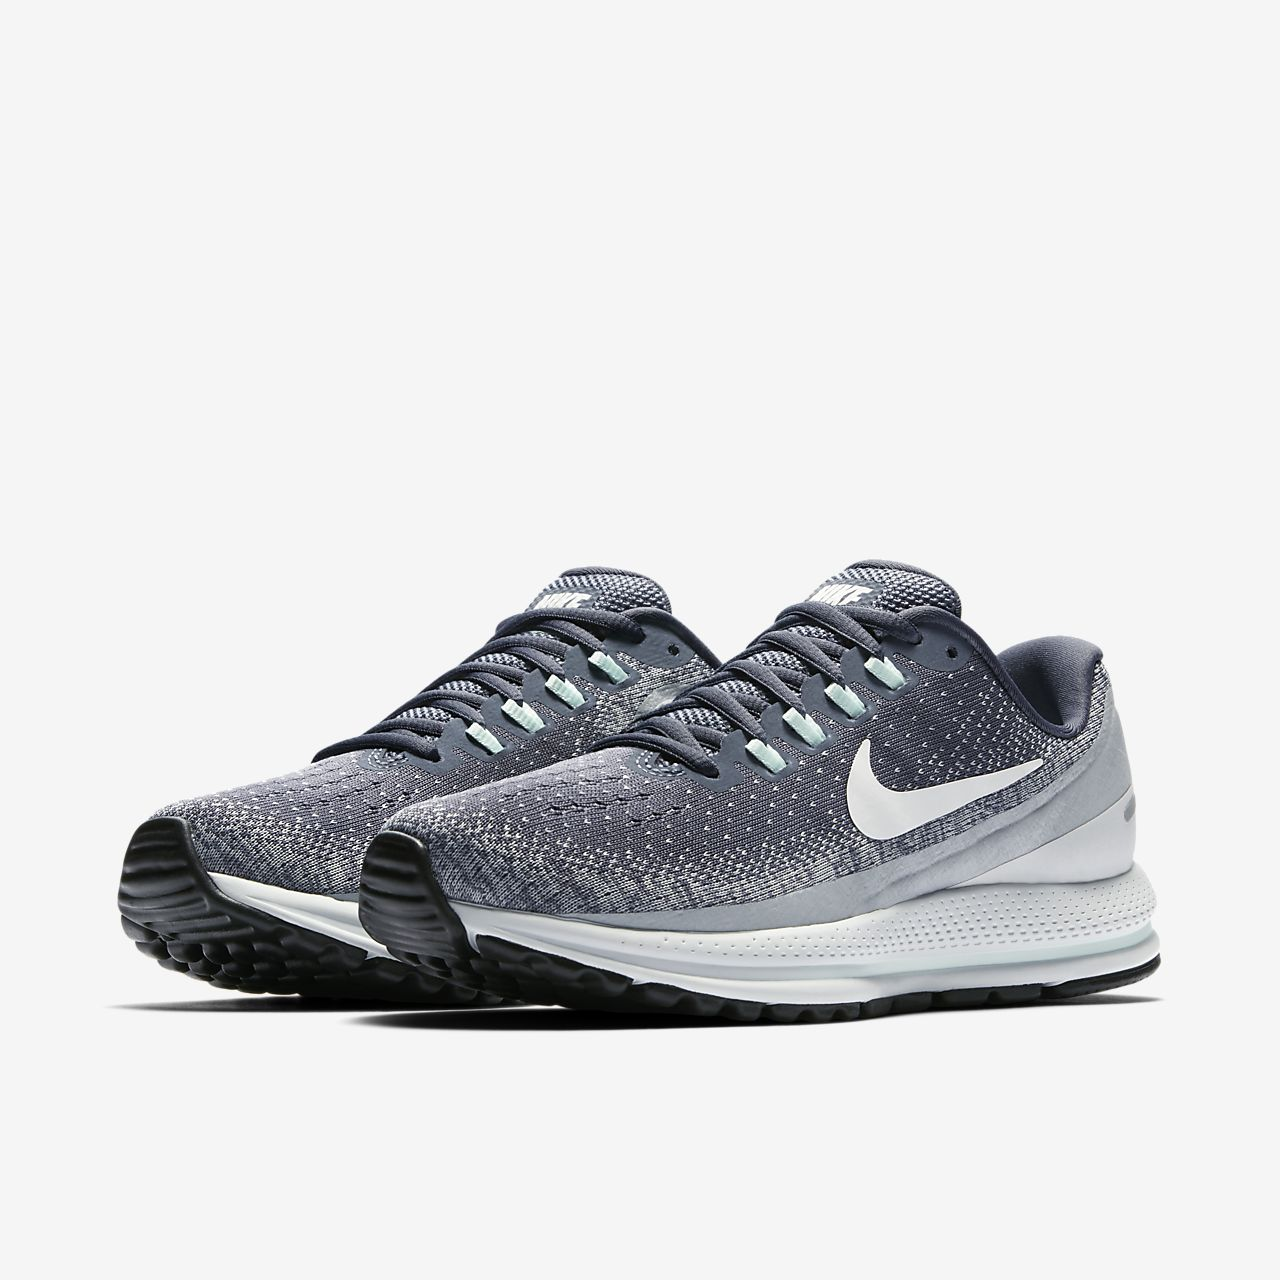 e6c333062f247 Nike Air Zoom Vomero 13 Women s Running Shoe. Nike.com AU